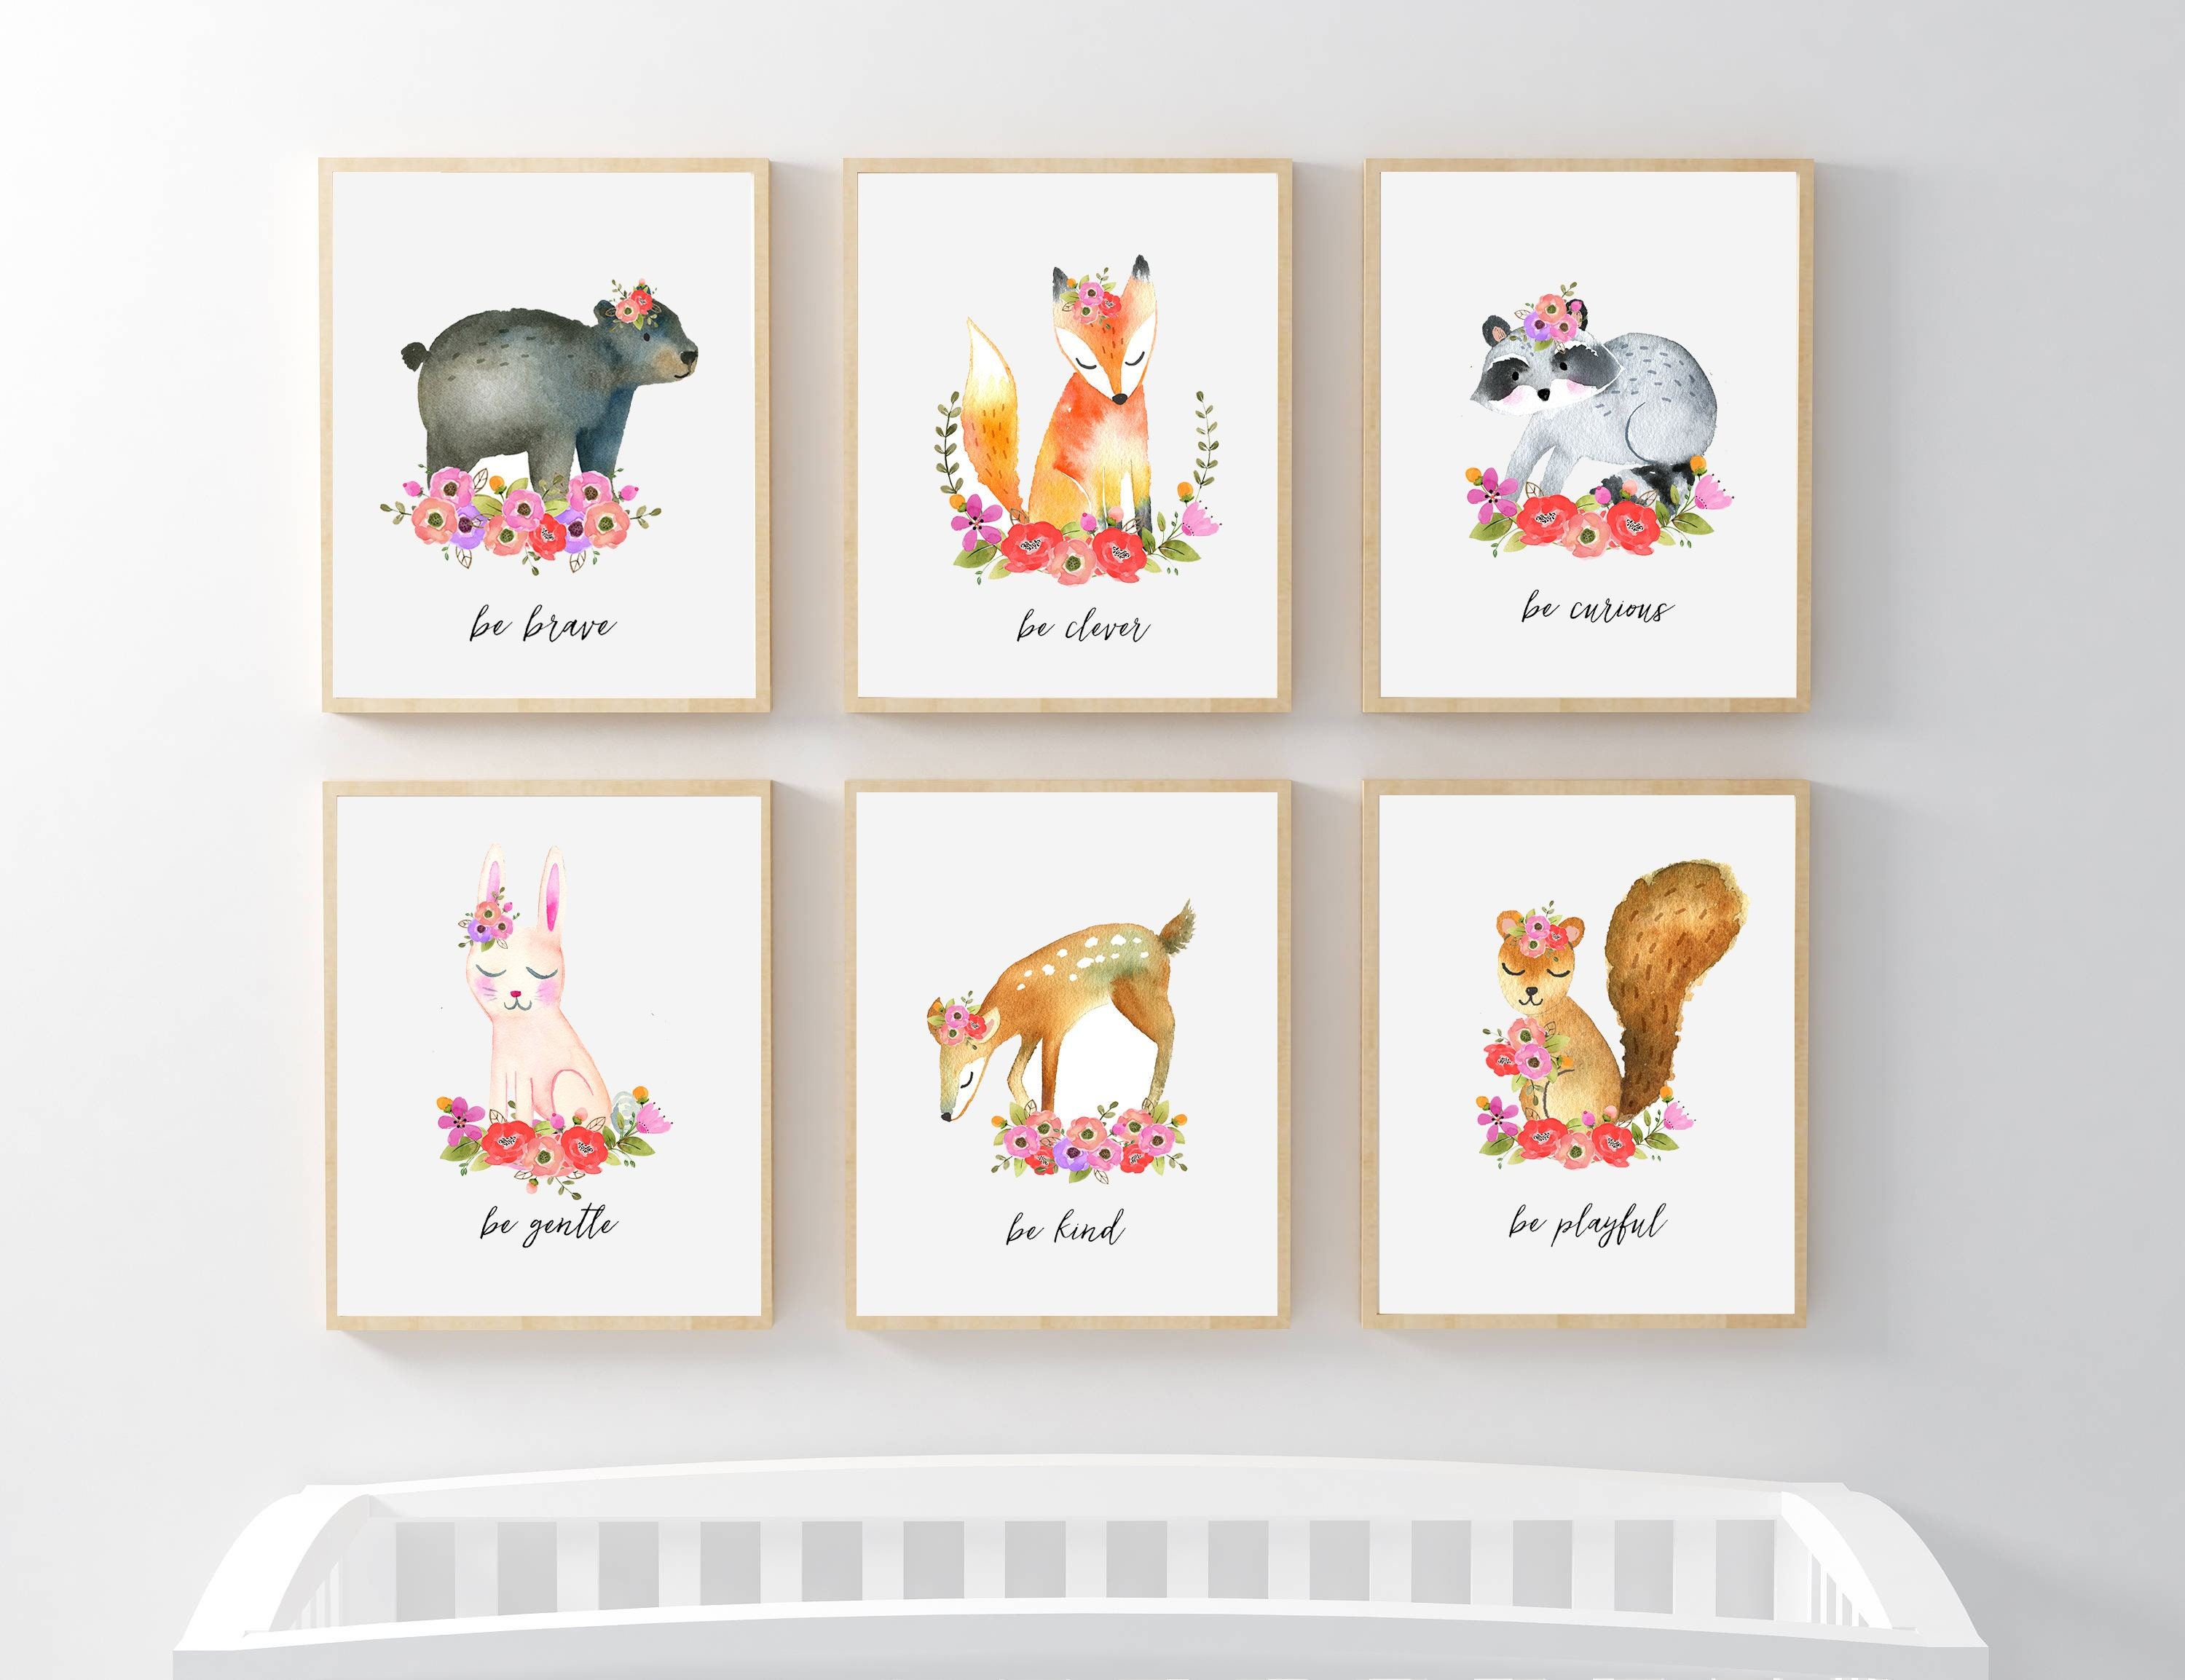 picture relating to Printable Woodland Animals referred to as PRINTABLE Woodland Animal Nursery Artwork, Female Floral Nursery Prints, Floral Woodland Pets Be Type Courageous Smart Curious Intelligent Smooth Playful